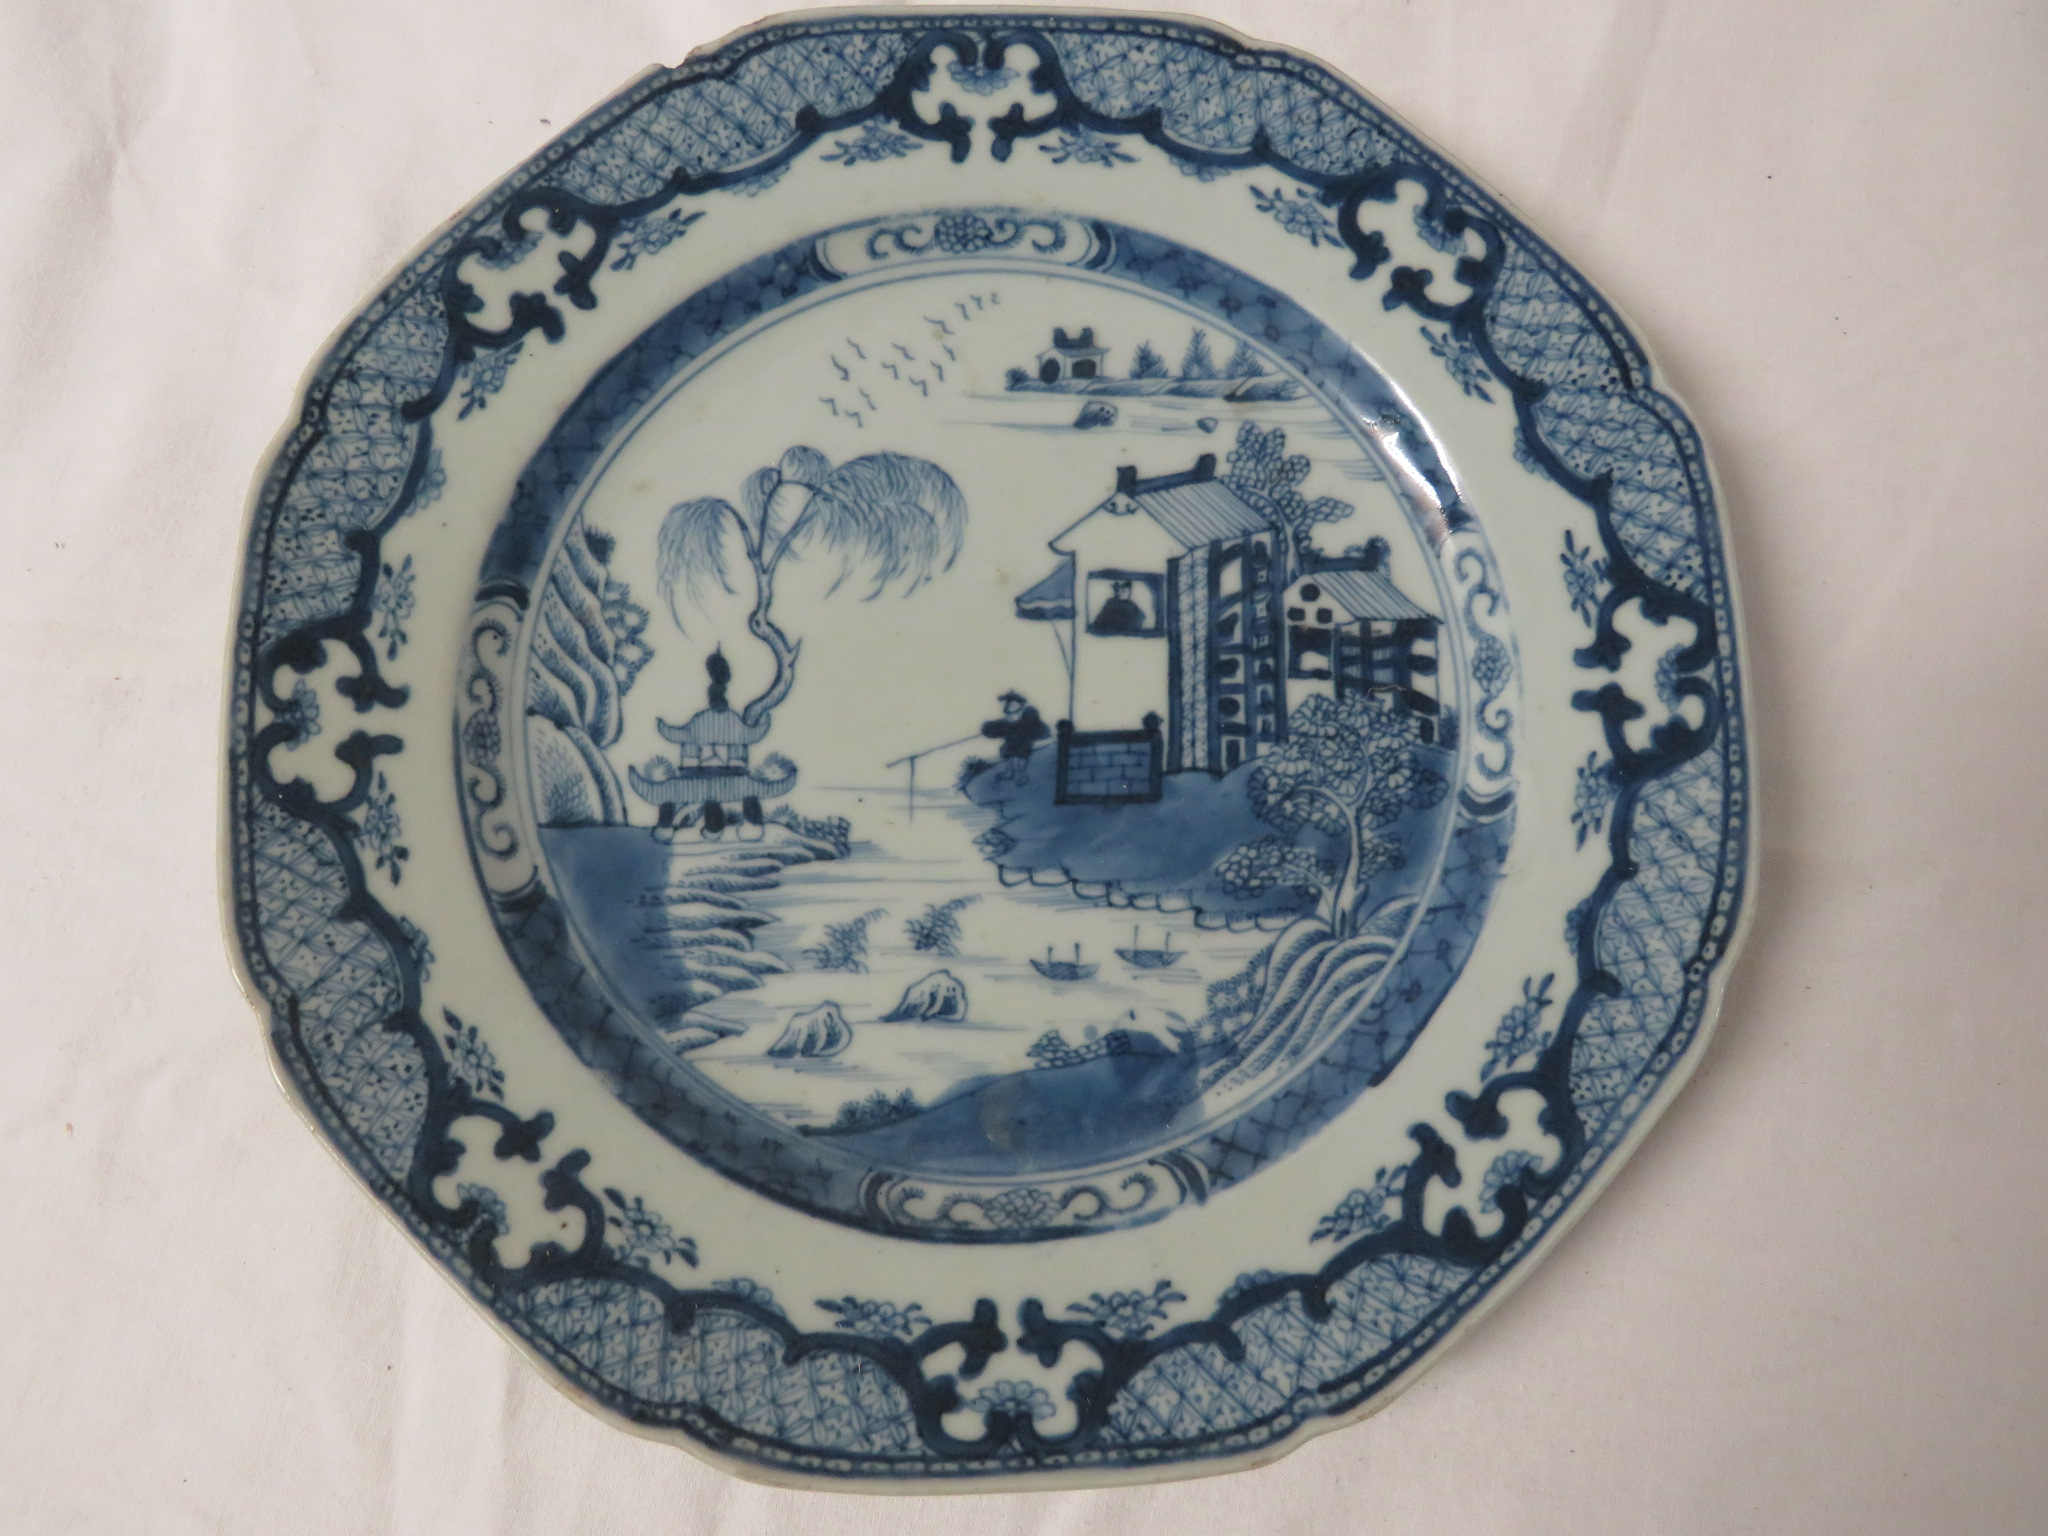 Lot 49 - An octagonal Chinese blue and white porcelain plate painted with houses in landscape and a patterned